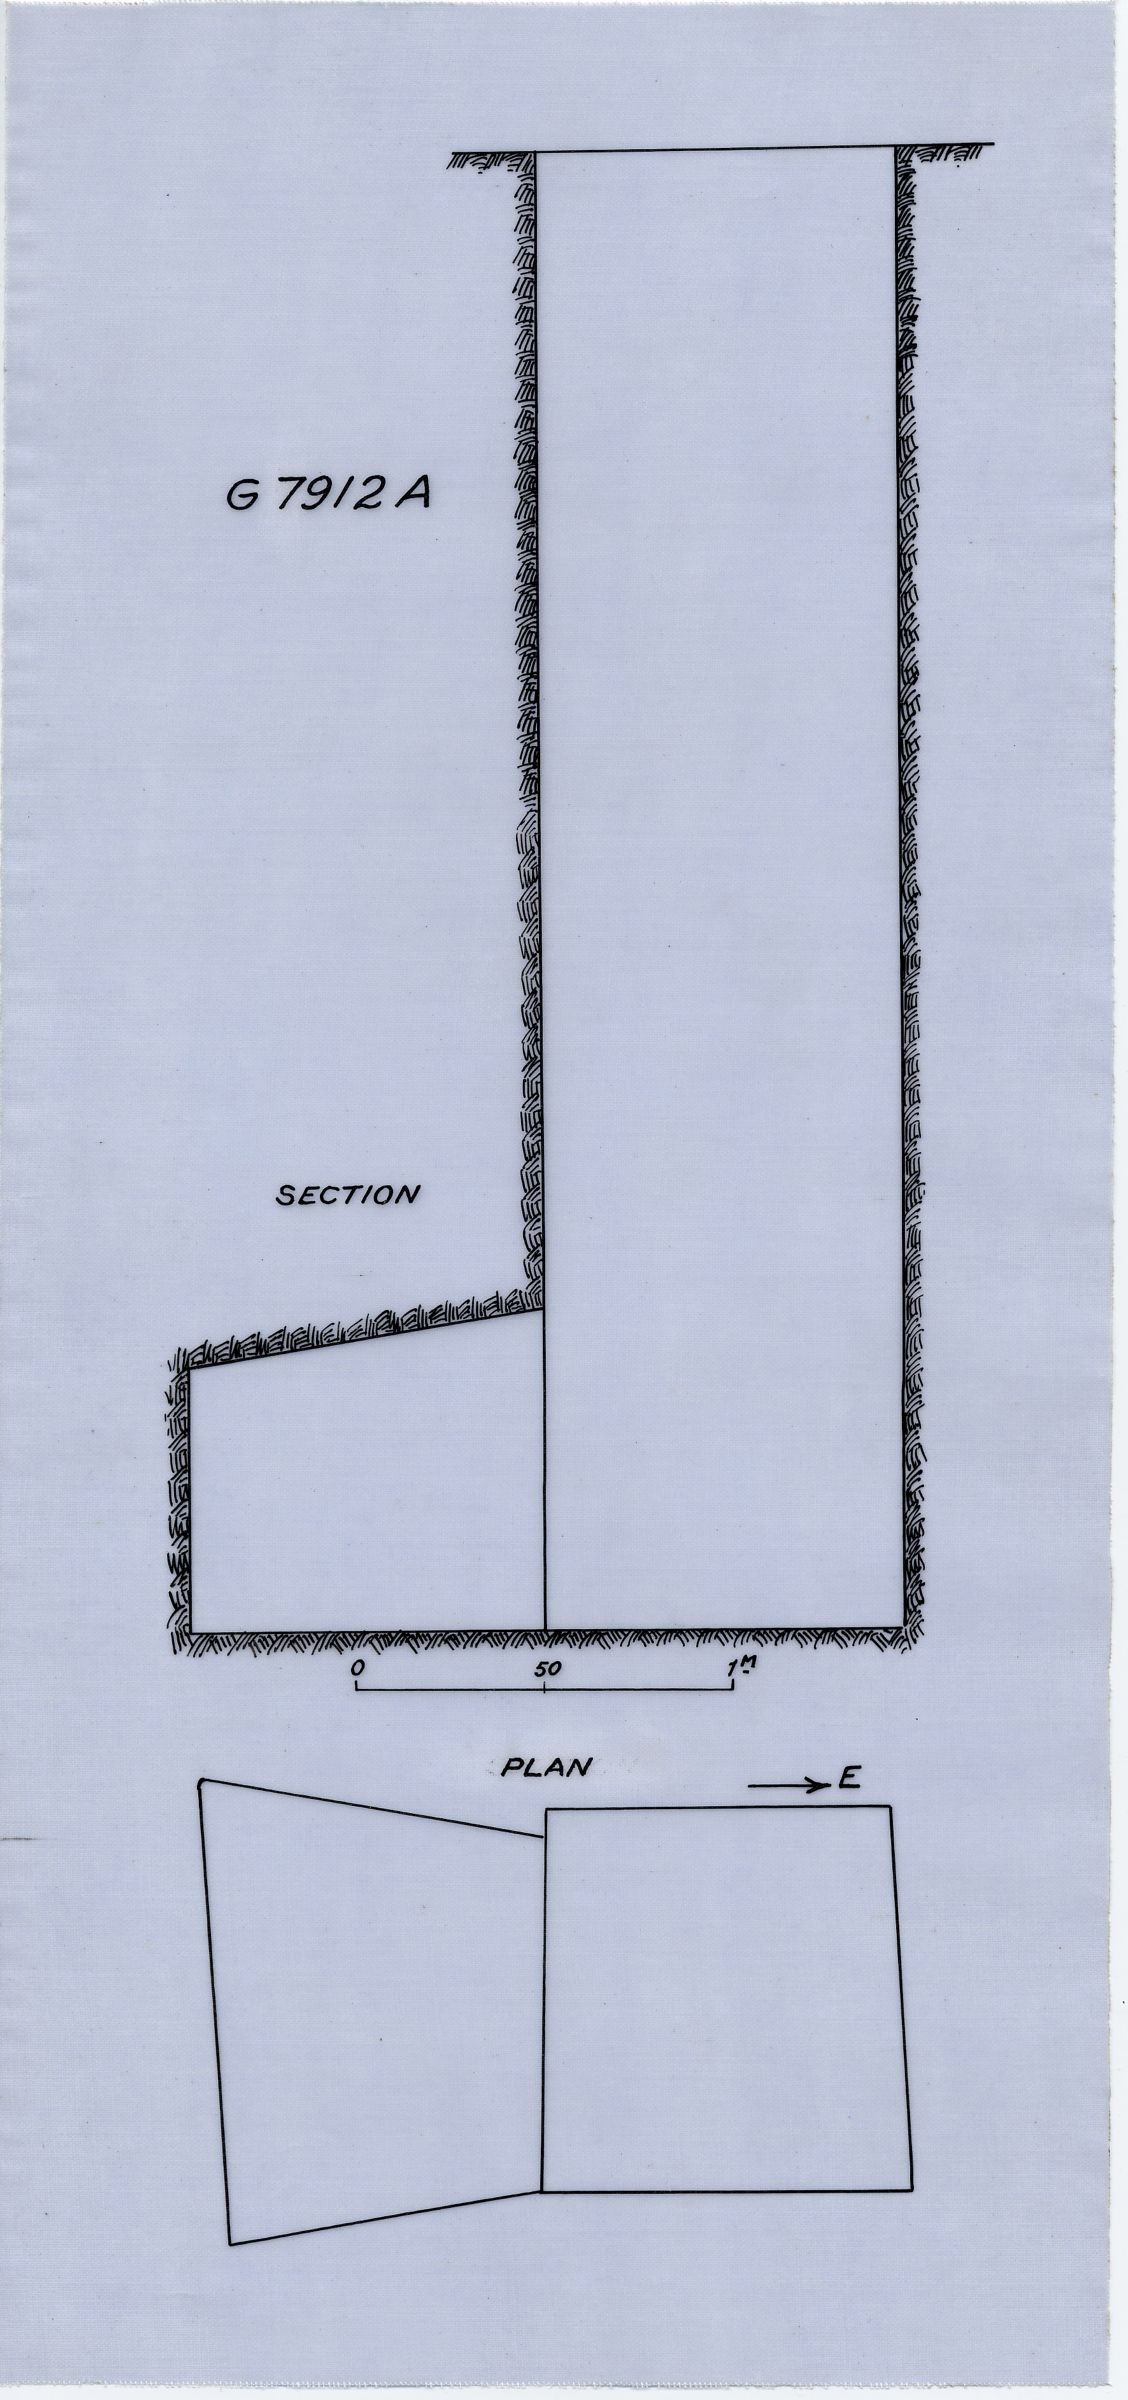 Maps and plans: G 7912, Shaft A